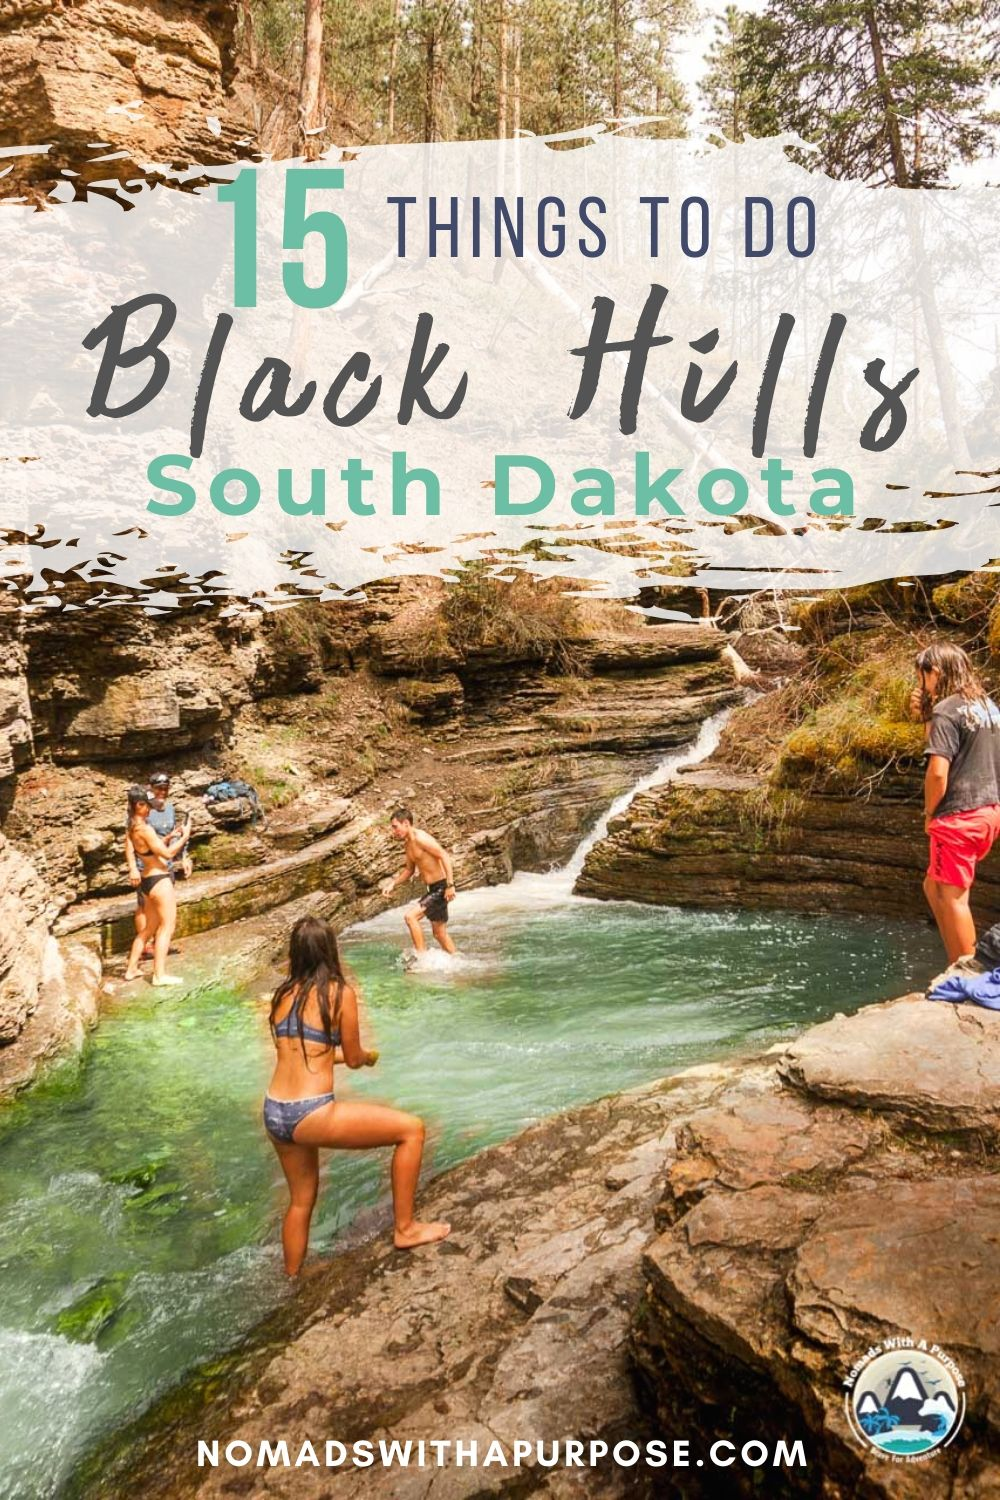 Things to do in the Black Hills, South Dakota